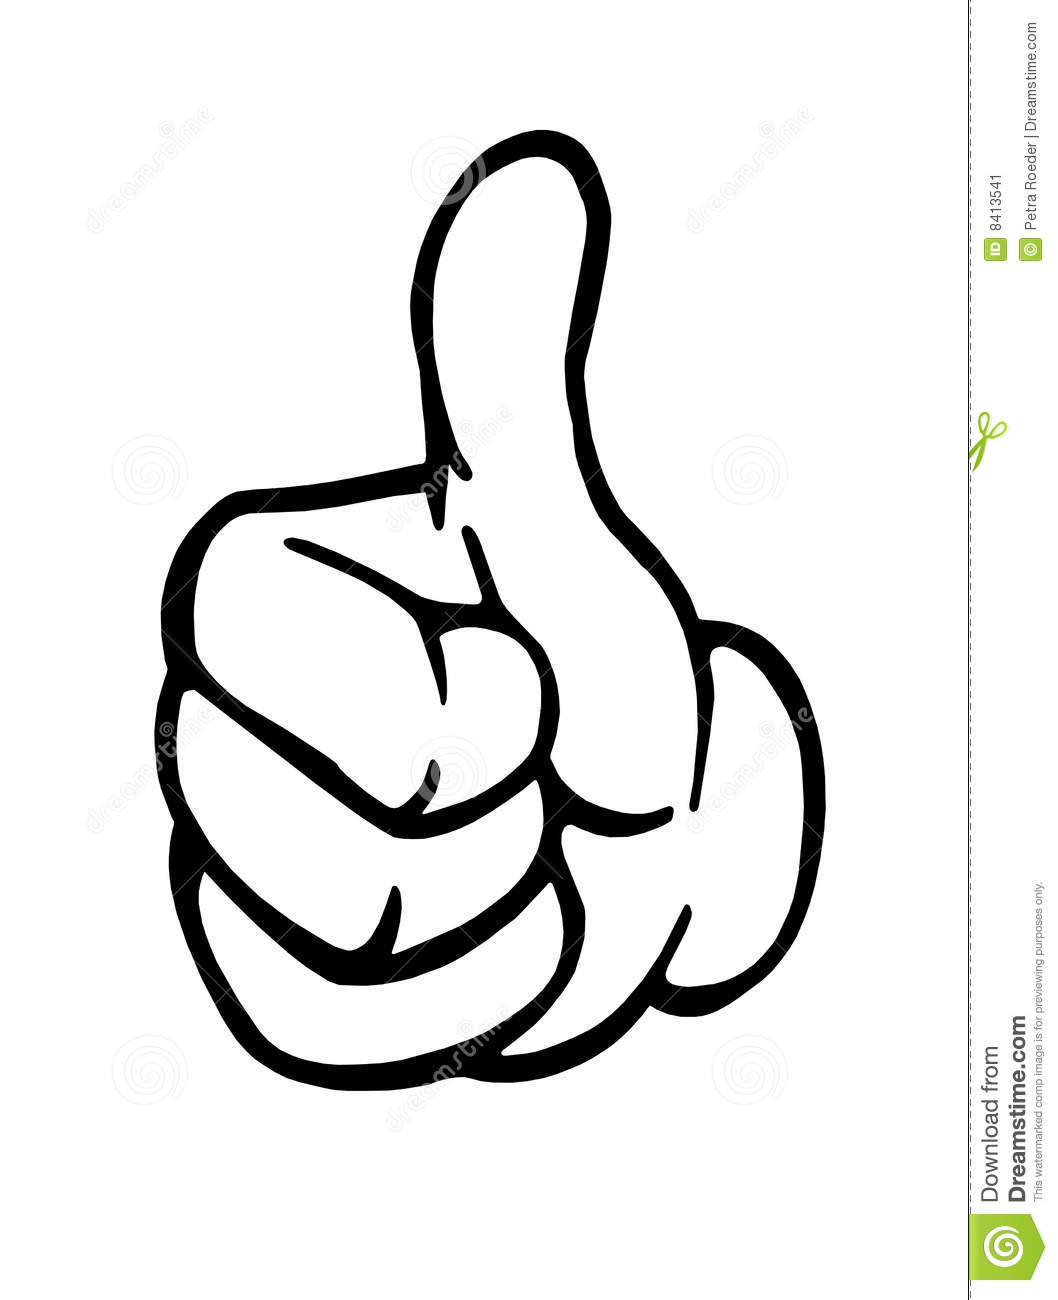 Clipartfest hand making sign. 2 thumbs up clipart